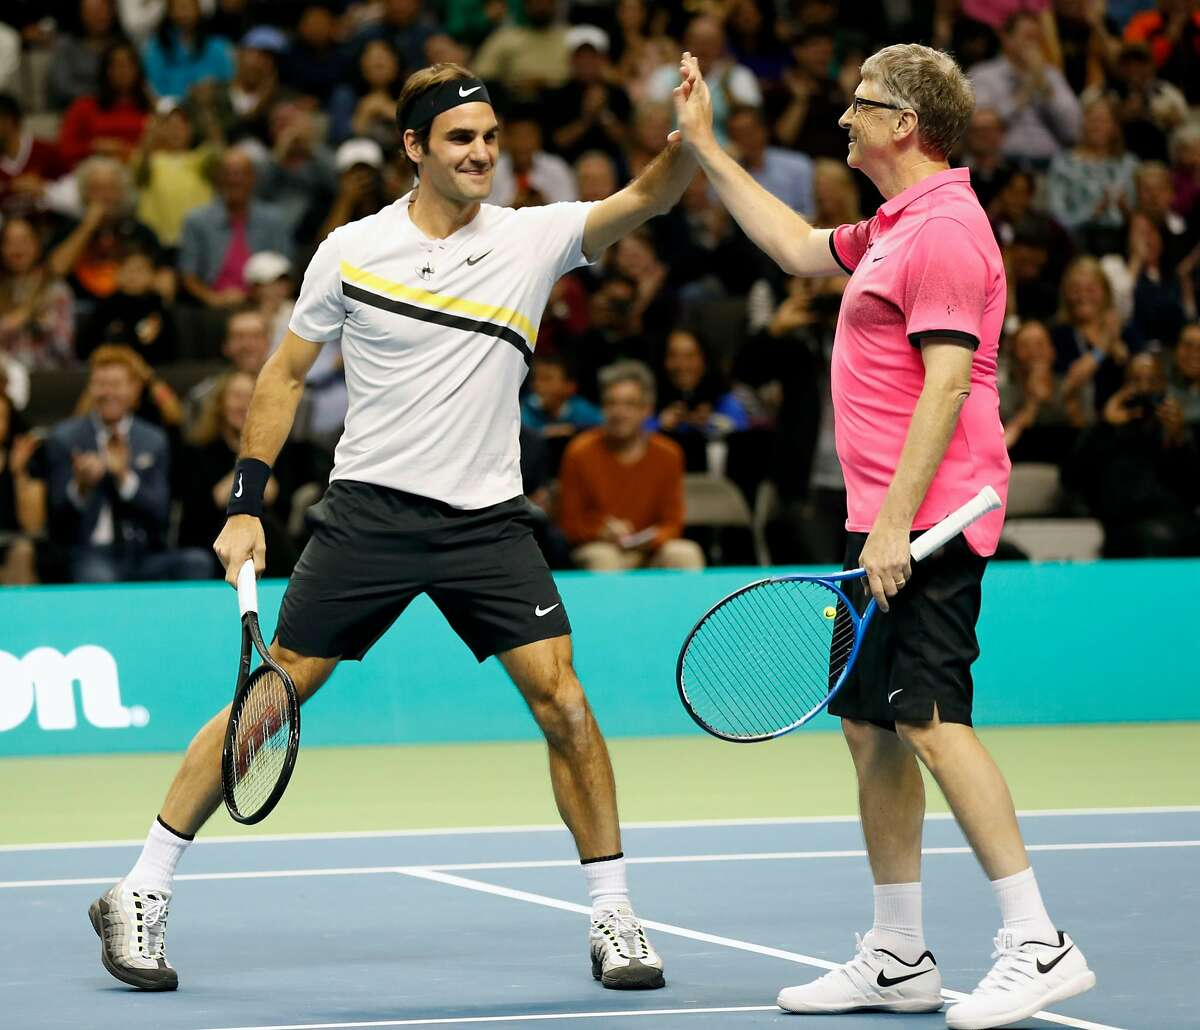 Roger Federer and Bill Gates high five while defeating Jack Sock and Savannah Guthrie during the pro/celebrity doubles tennis match during The Match for Africa at the SAP Center in San Jose, Calif., on Monday, March 5, 2018.